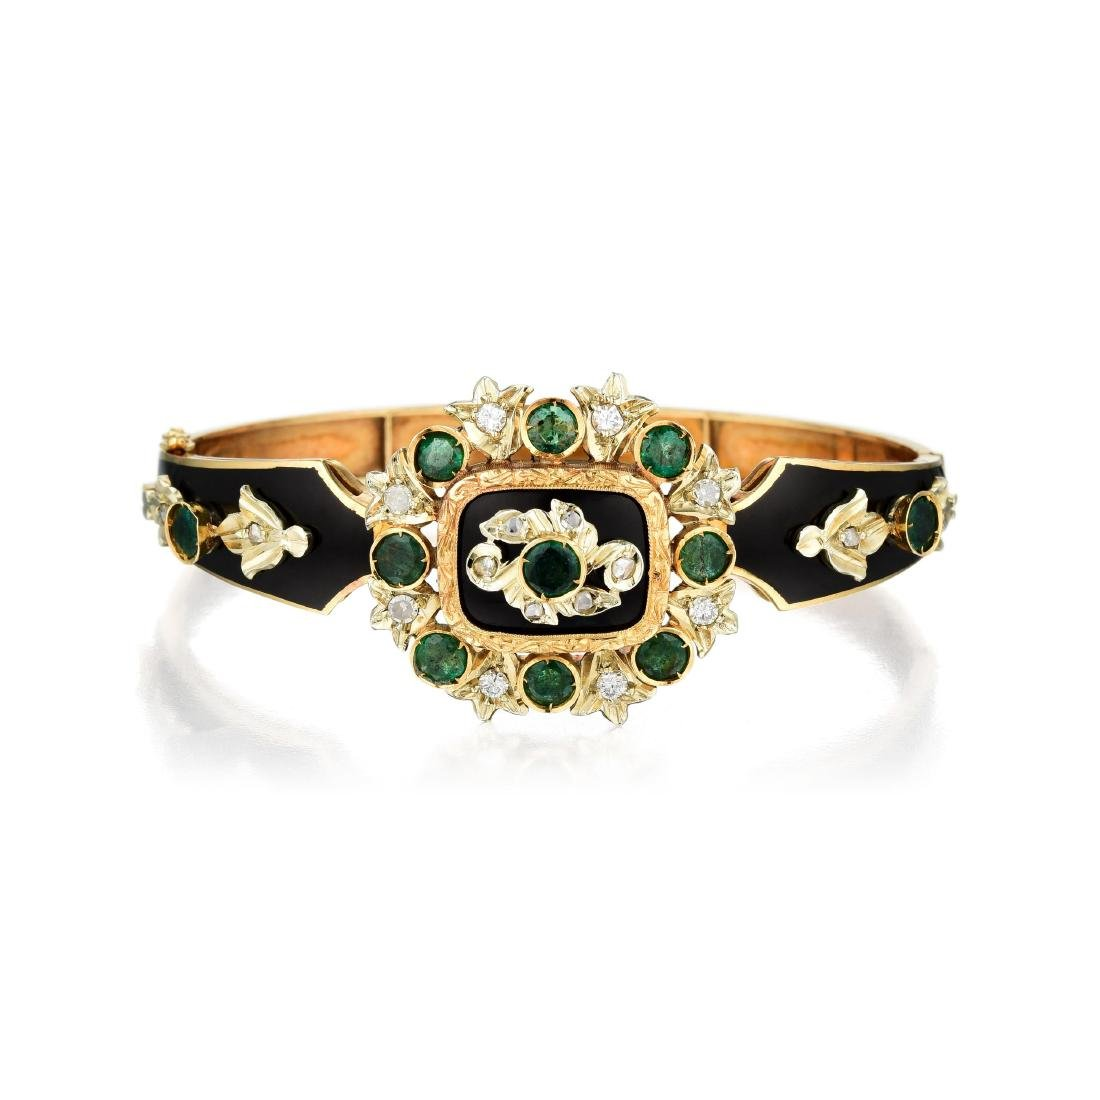 An 18K Gold, Diamond, Emerald and Enamel Bracelet